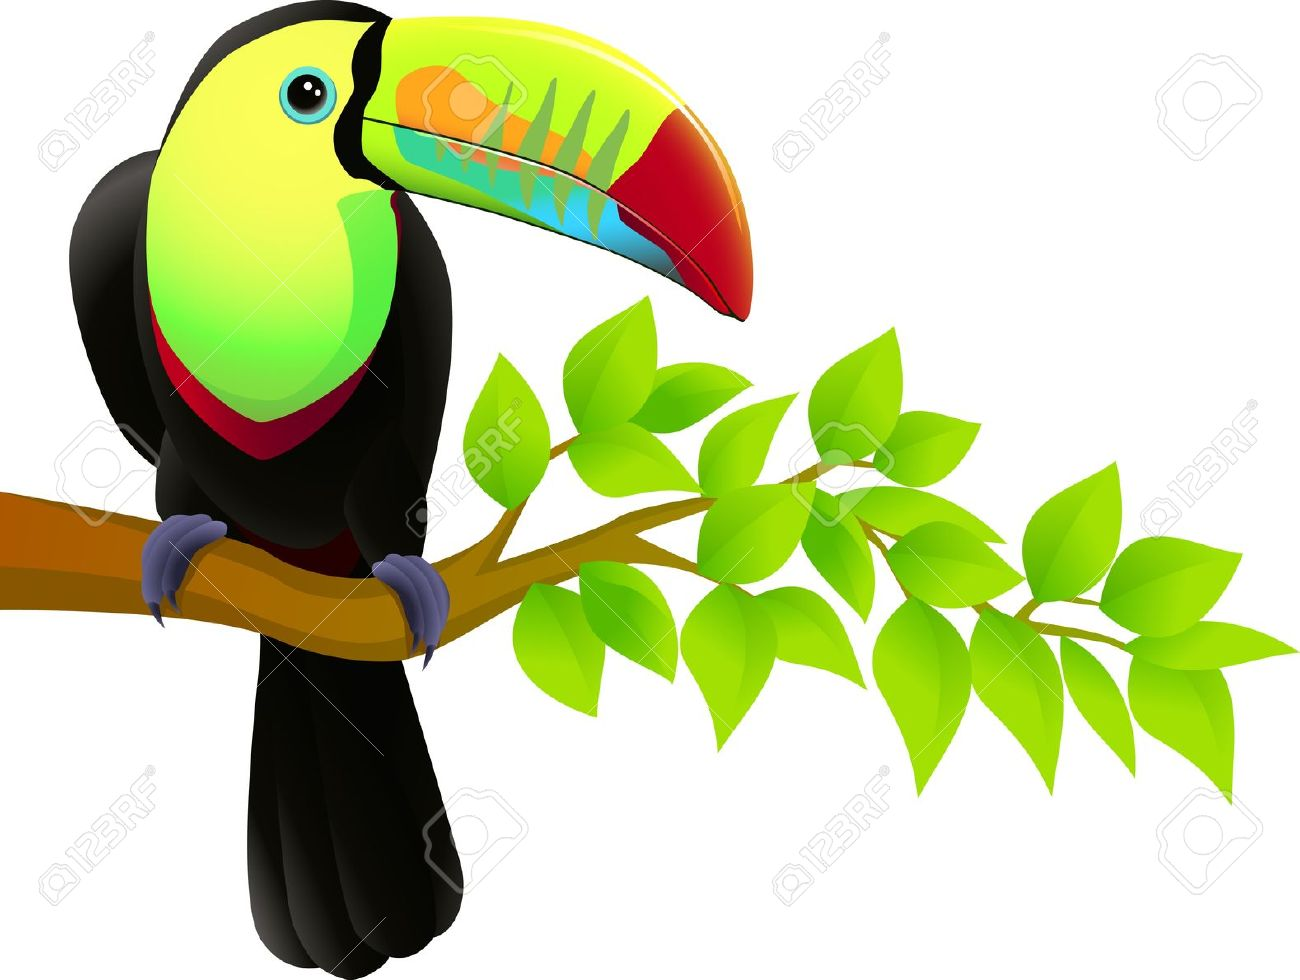 Toucan Bird Royalty Free Cliparts, Vectors, And Stock Illustration.